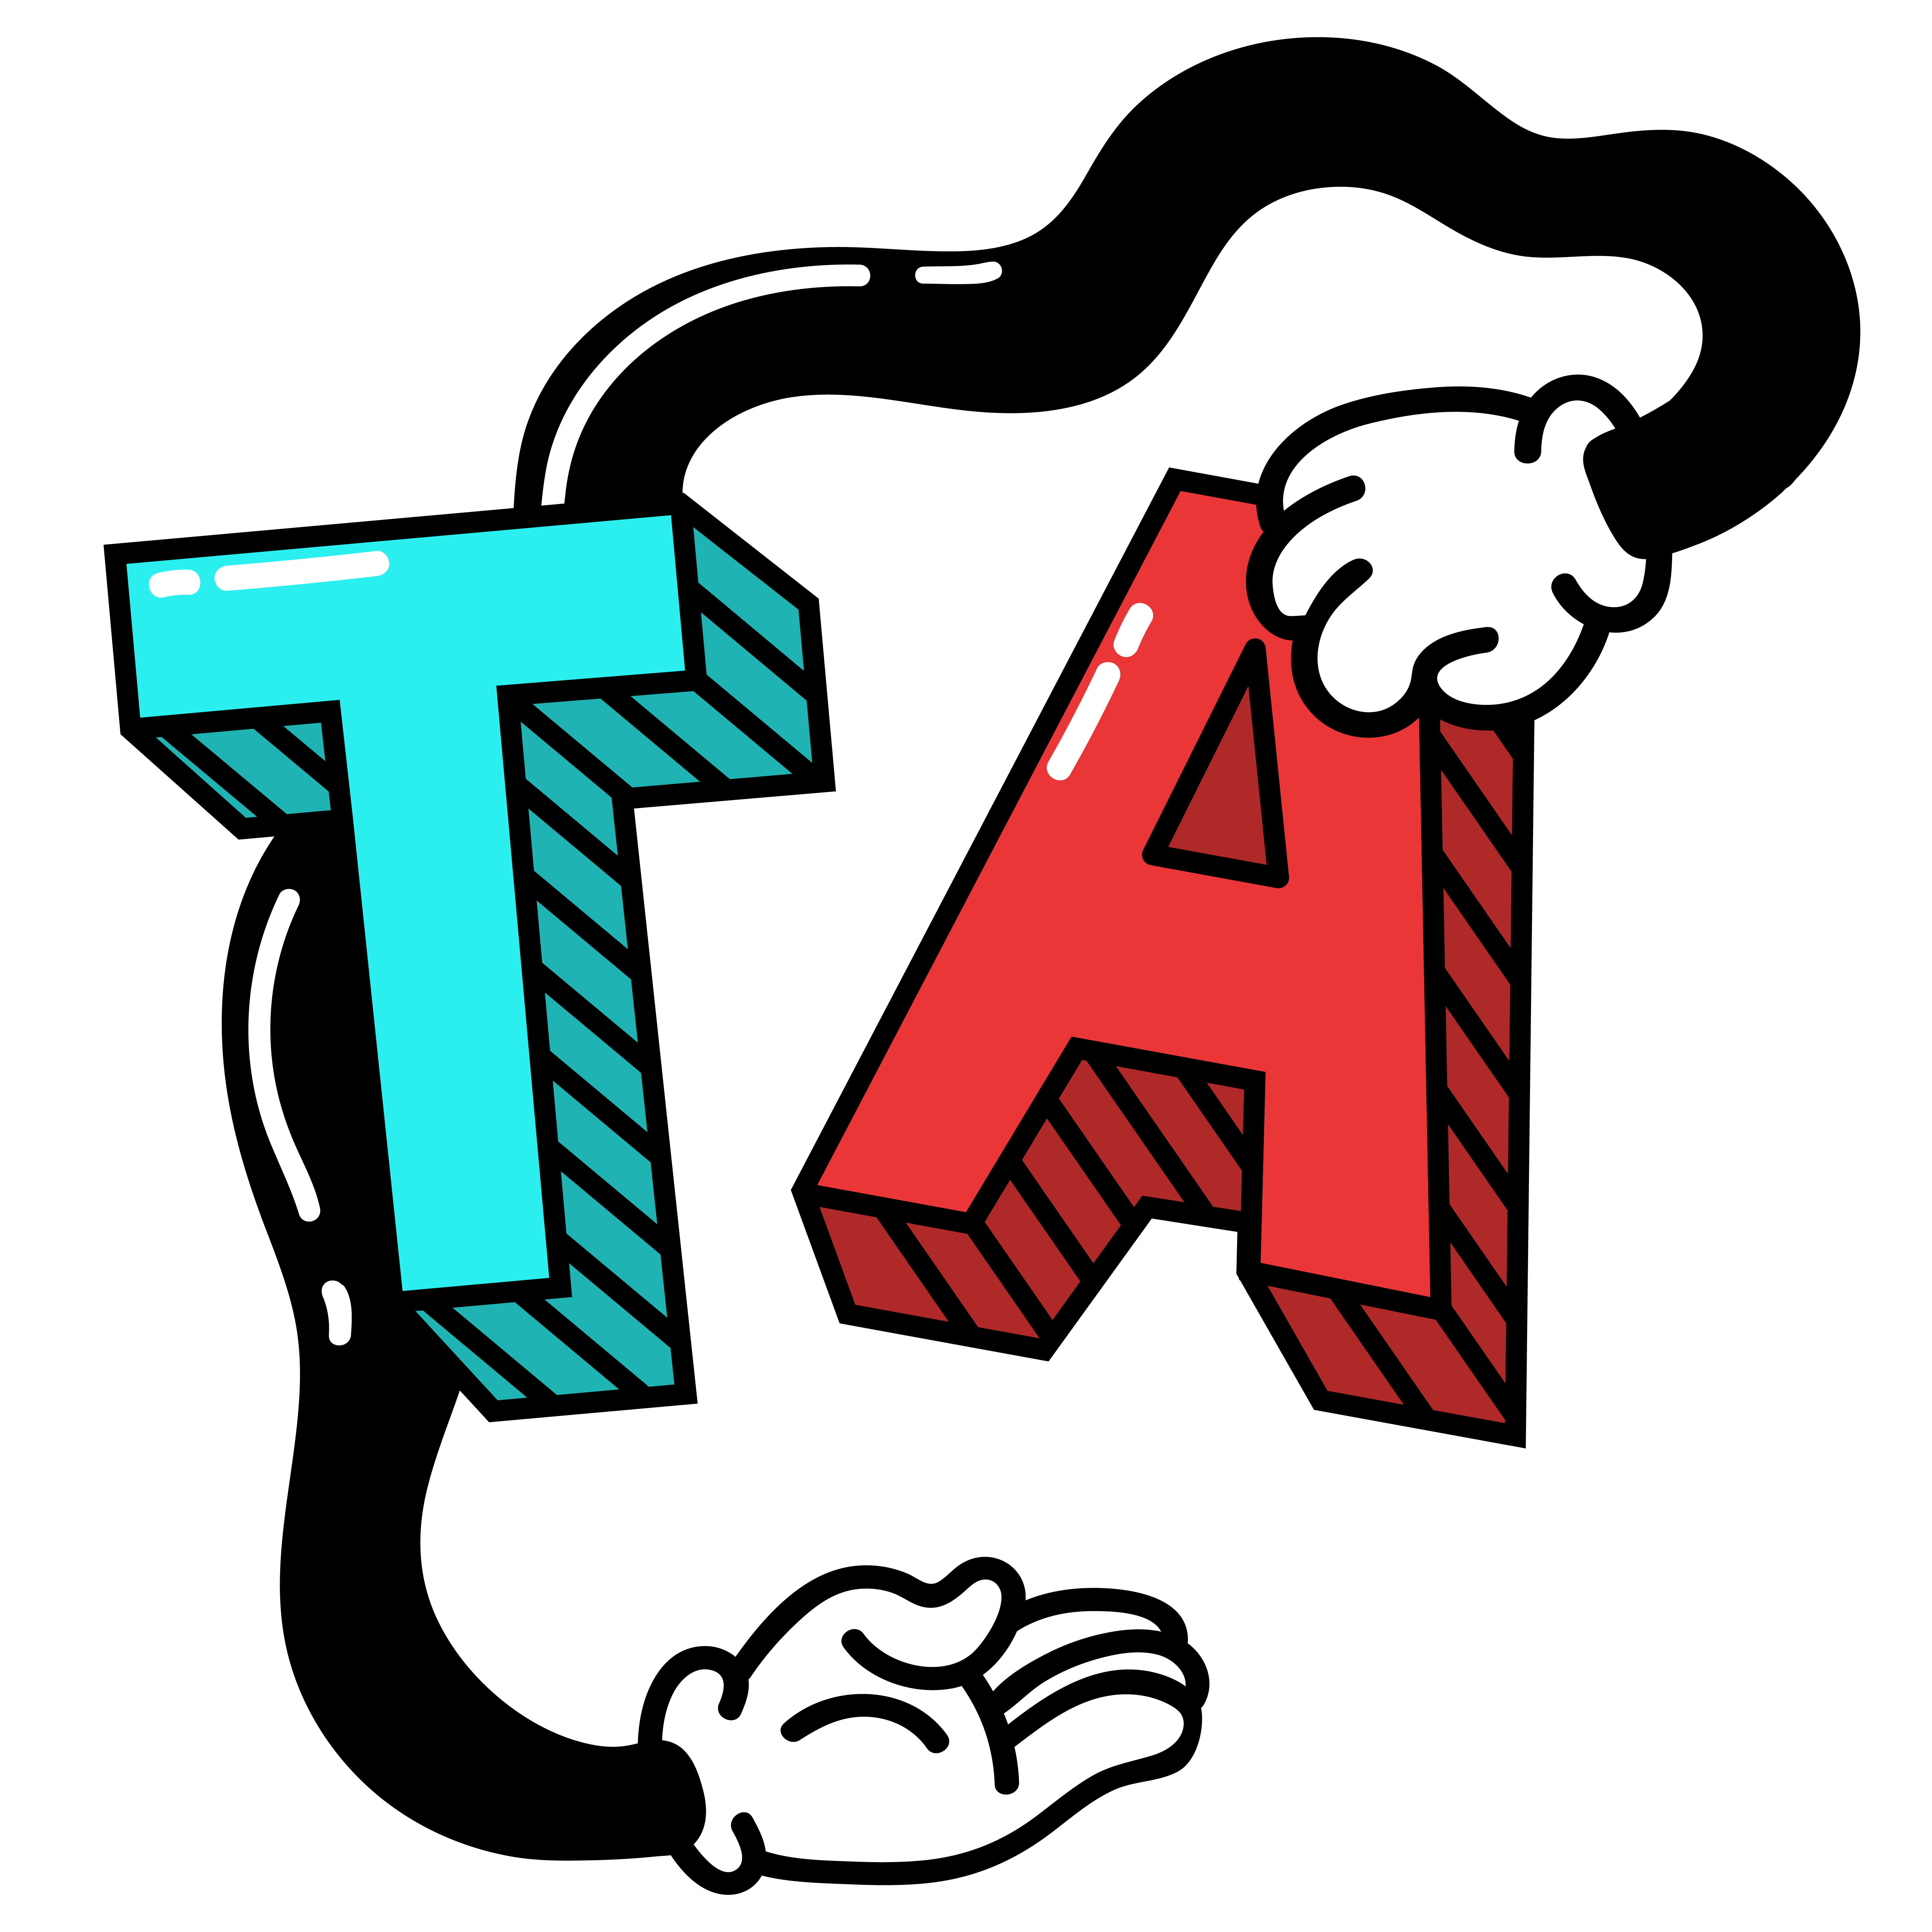 Teal, 3D letter T and red, 3D letter A with black arms and white gloved hands wrapping around the two letters.